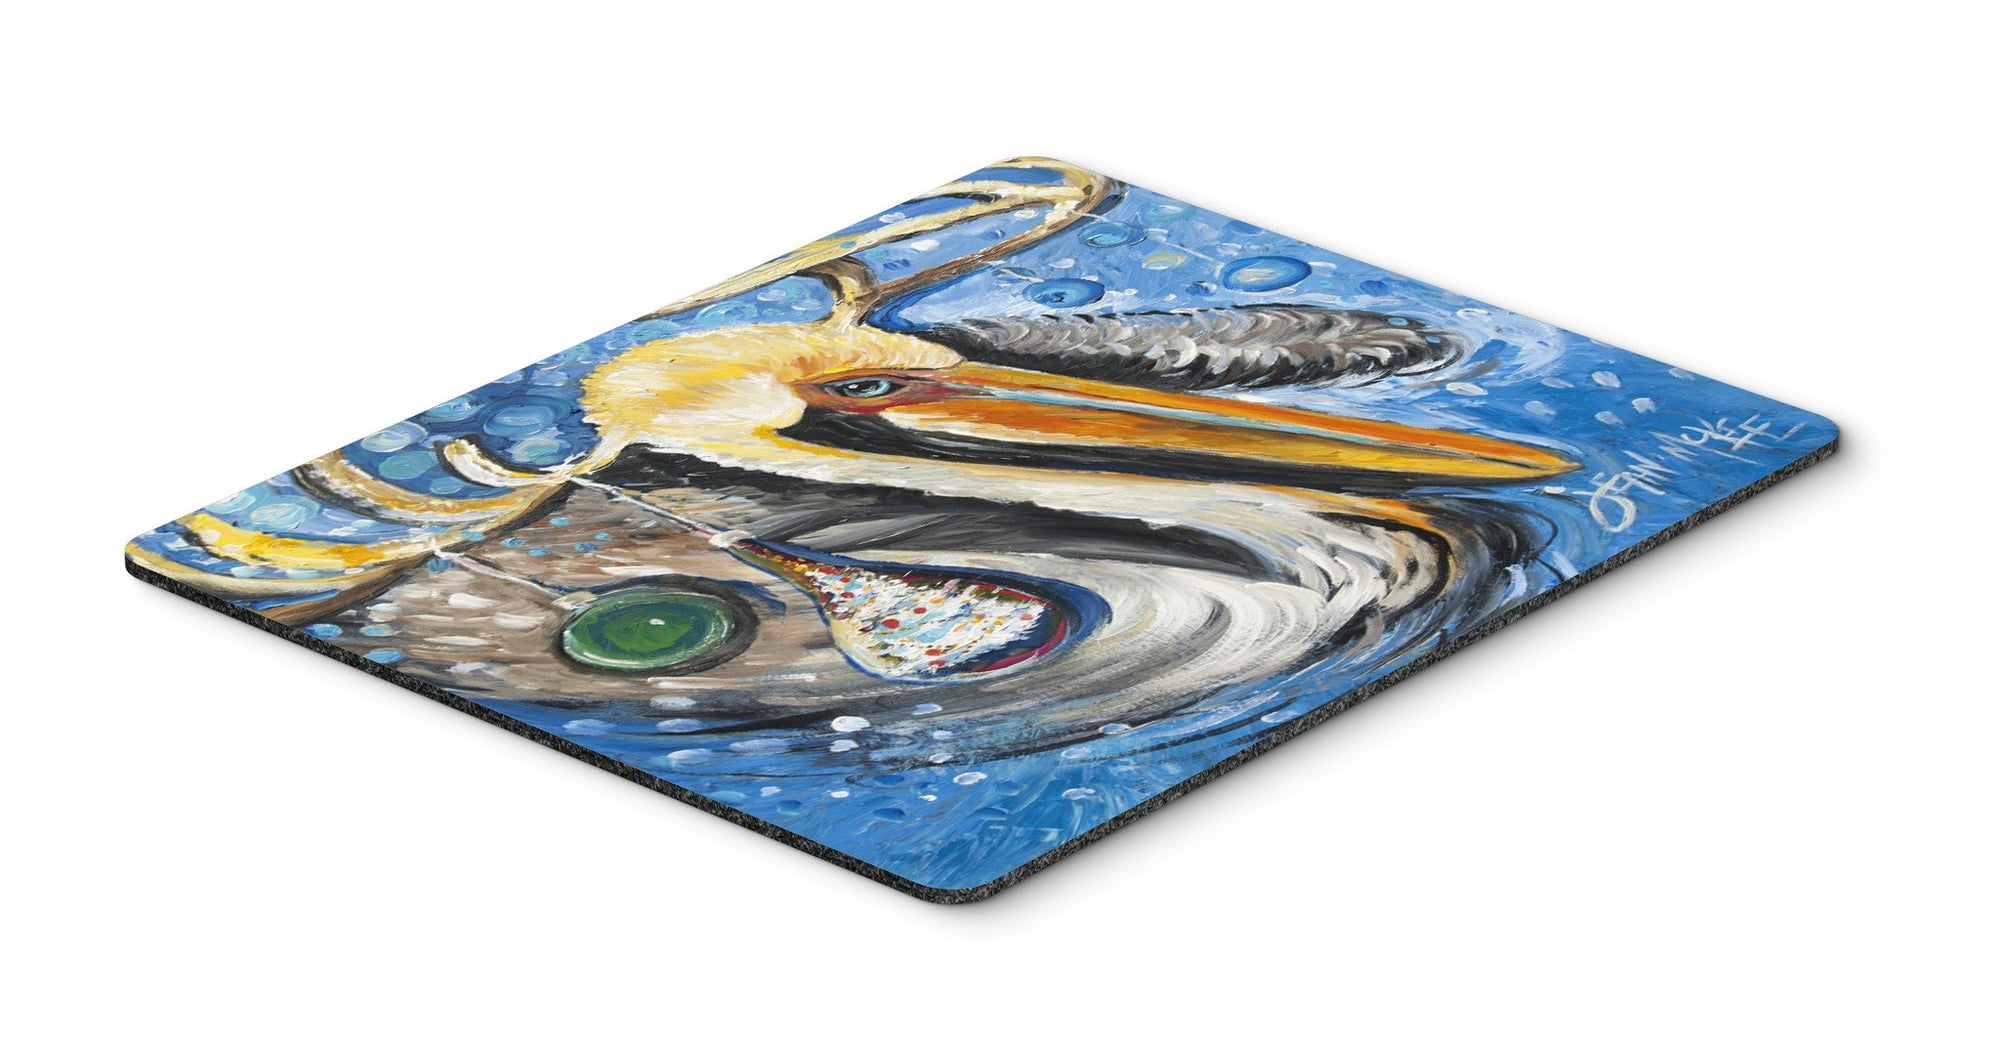 Buy this Pelican Dressed as a Reindeer Mouse Pad, Hot Pad or Trivet JMK1020MP